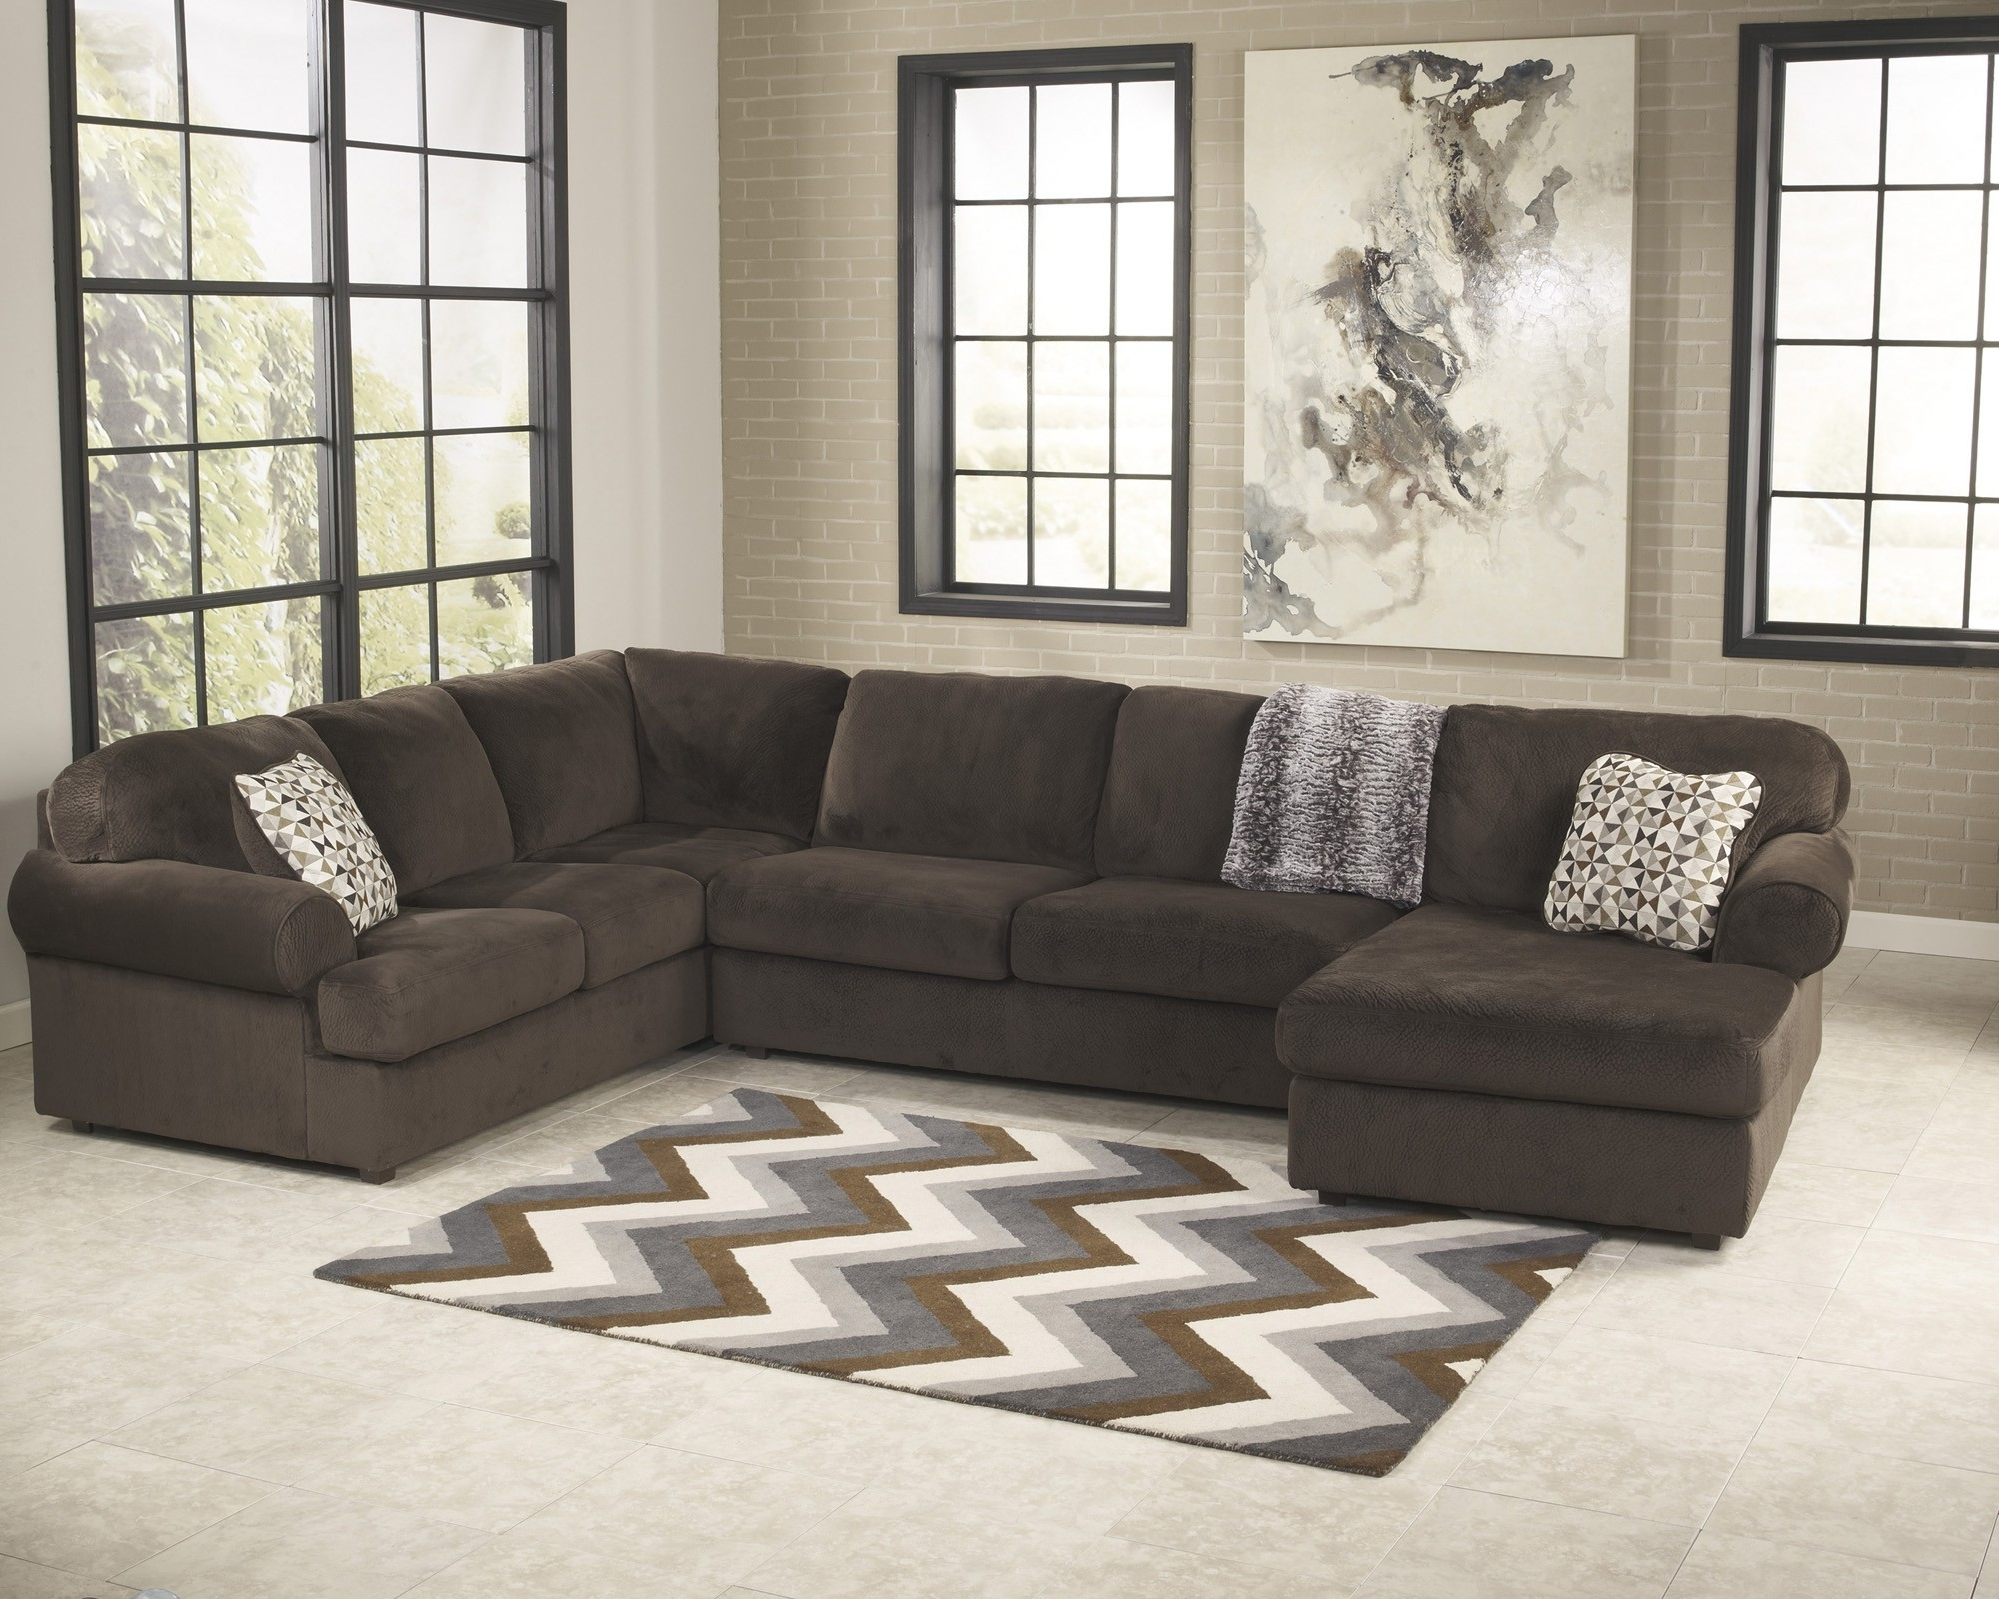 Latest 3 Piece Sectional Sofas With Chaise Within Jessa Place Chocolate 3 Piece Sectional Sofa For $ (View 7 of 15)